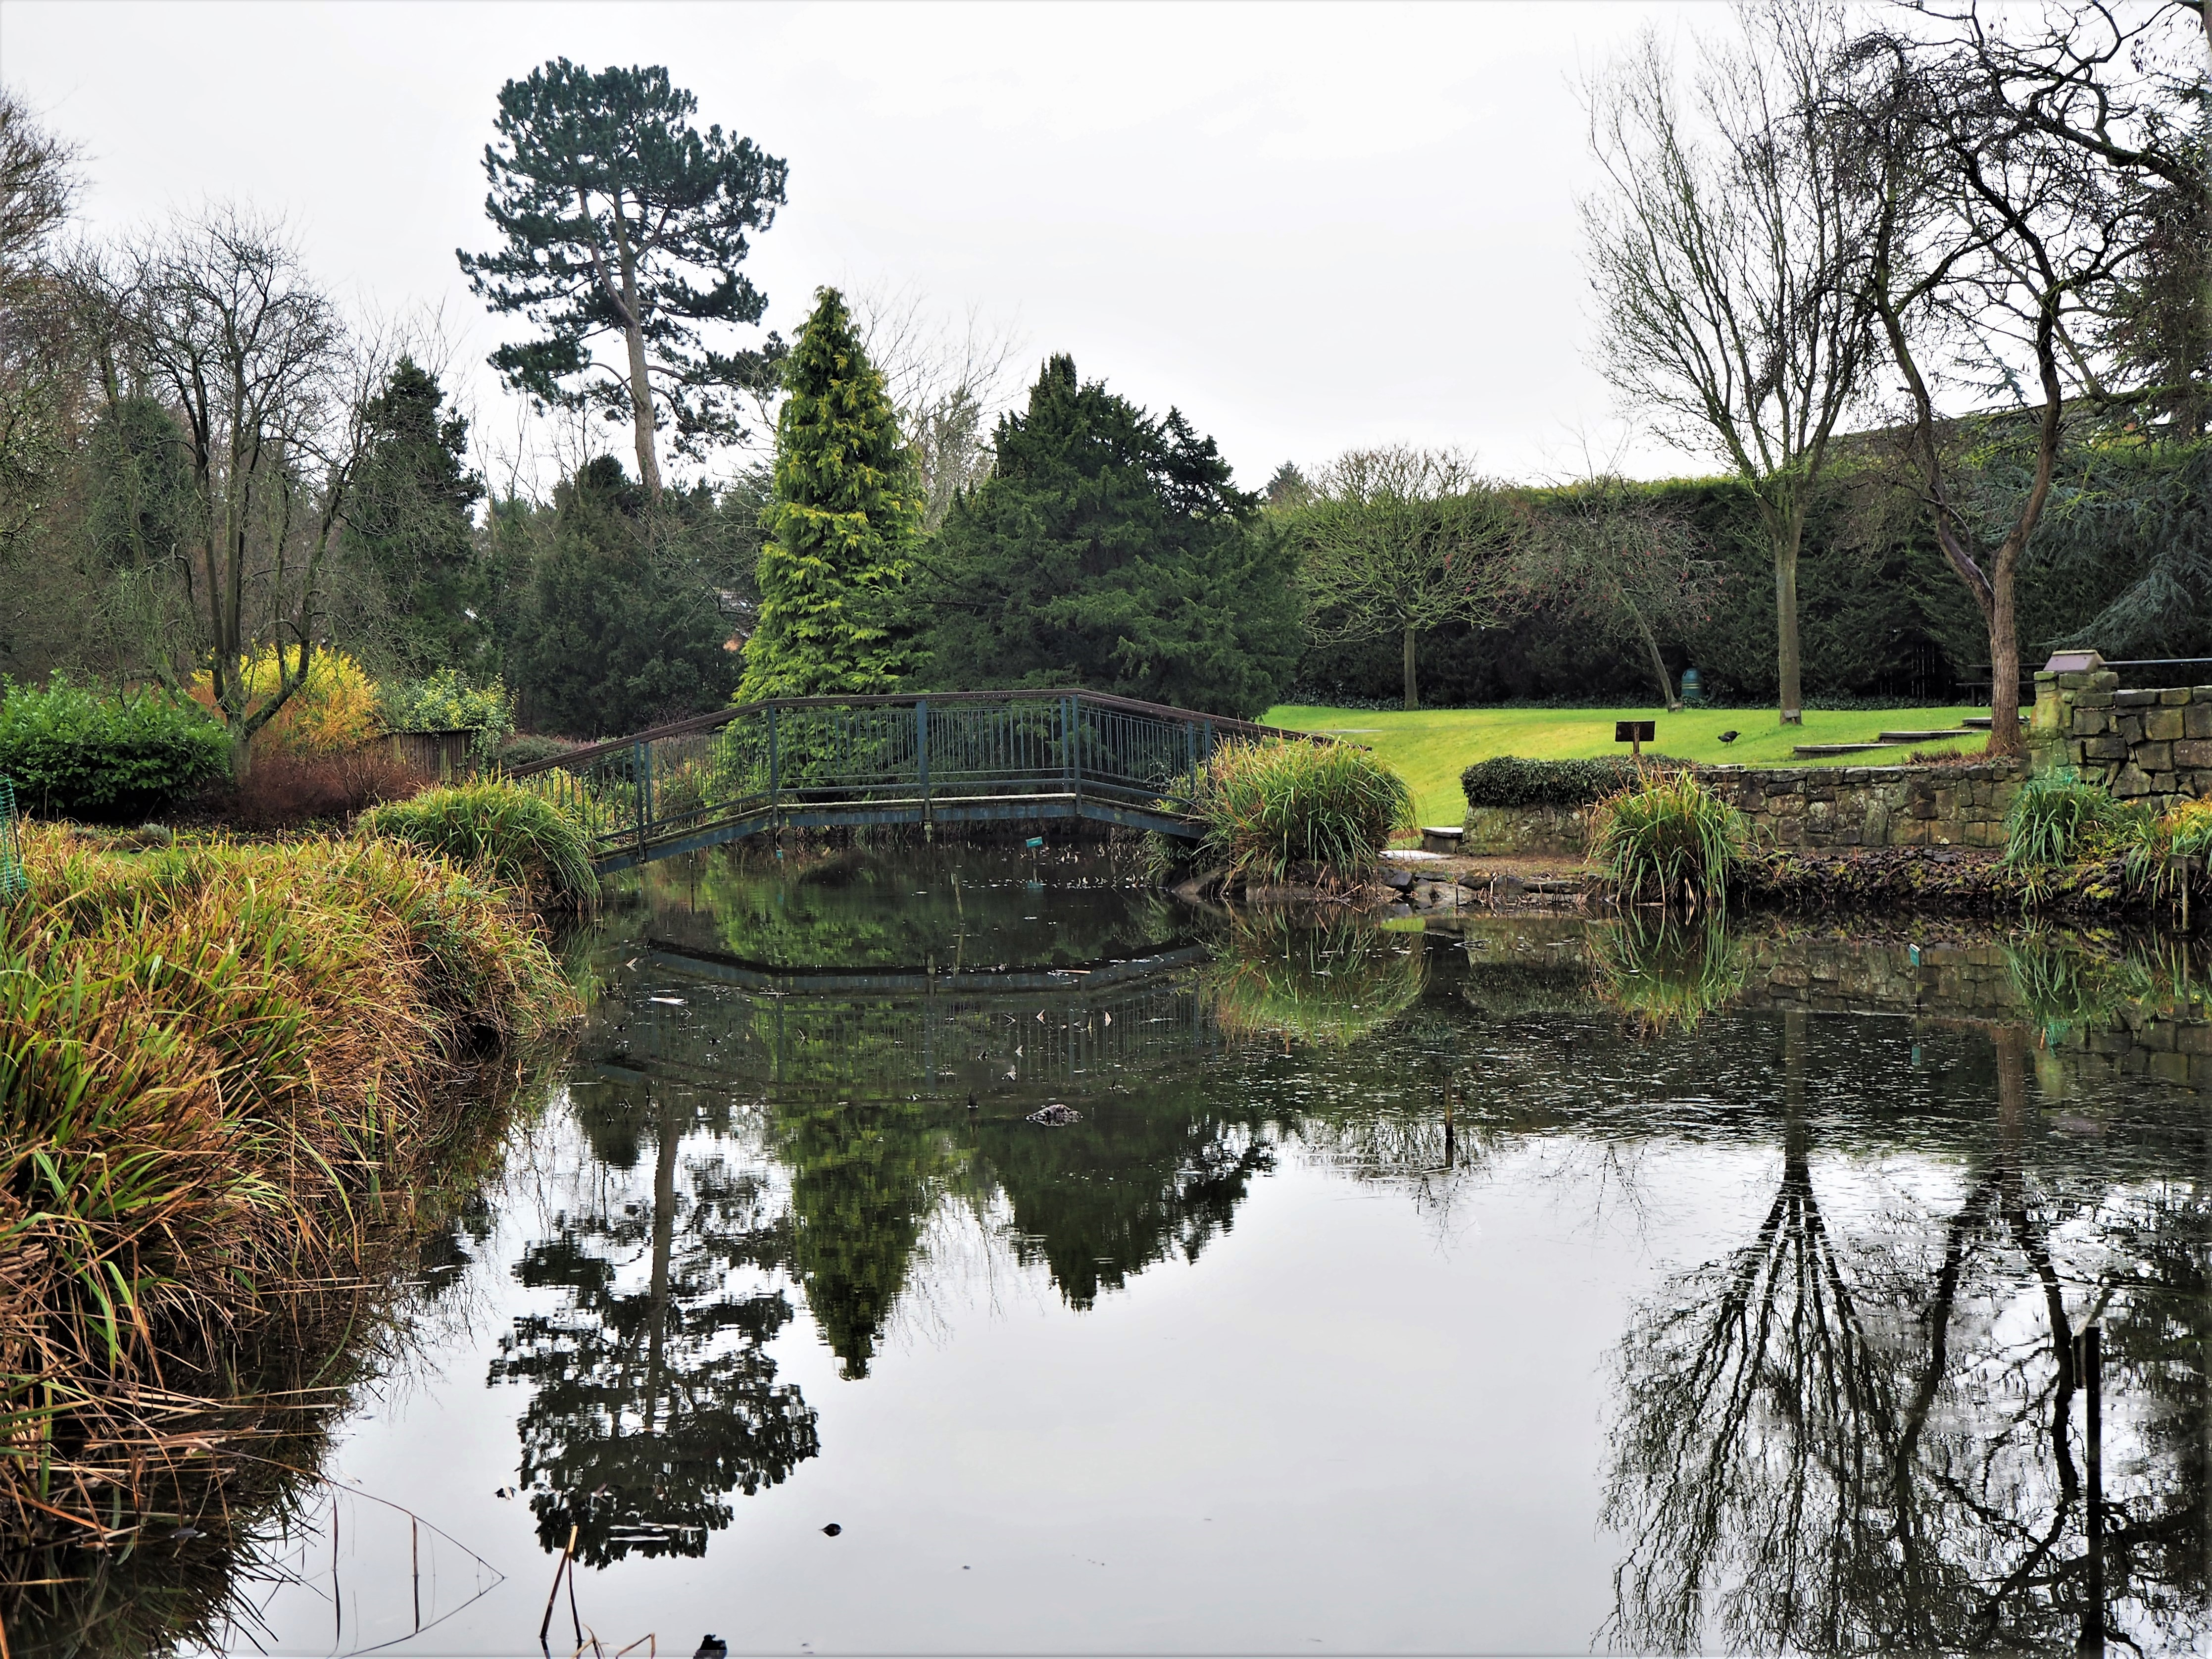 Reflections in a lake at Burnby Hall, Pocklington